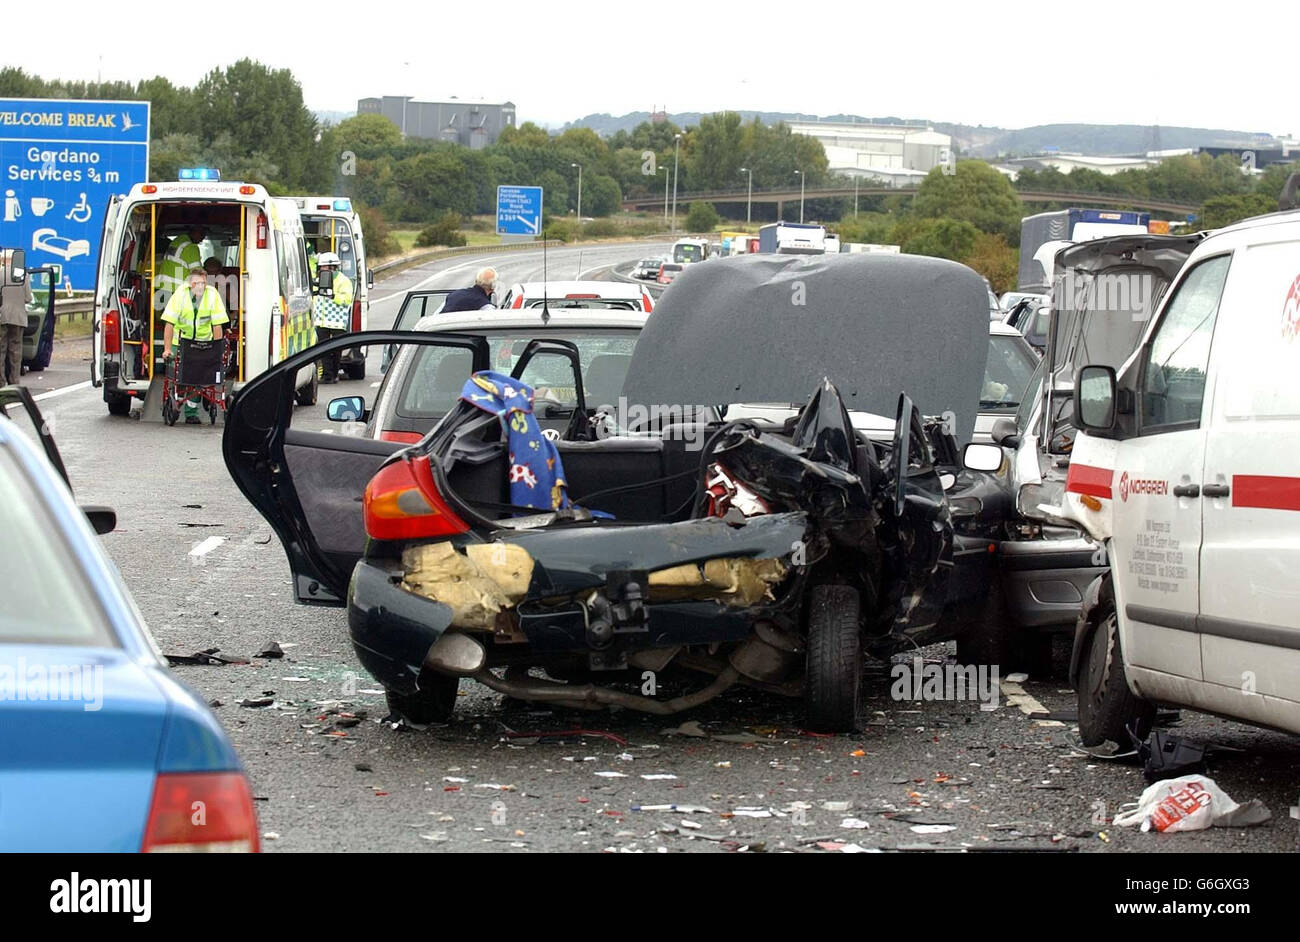 A car stands ruined after a crash involving 12 vehicles on the northbound carriageway of the M5 motorway near Bristol. Up to a dozen people were injured in the accident, which happened between junctions 20 and 19 of the motorway shortly after 1pm. The cause of the crash was not yet known, but a police spokesman said there were reports of a heavy downpour at around the time of the incident. Stock Photo